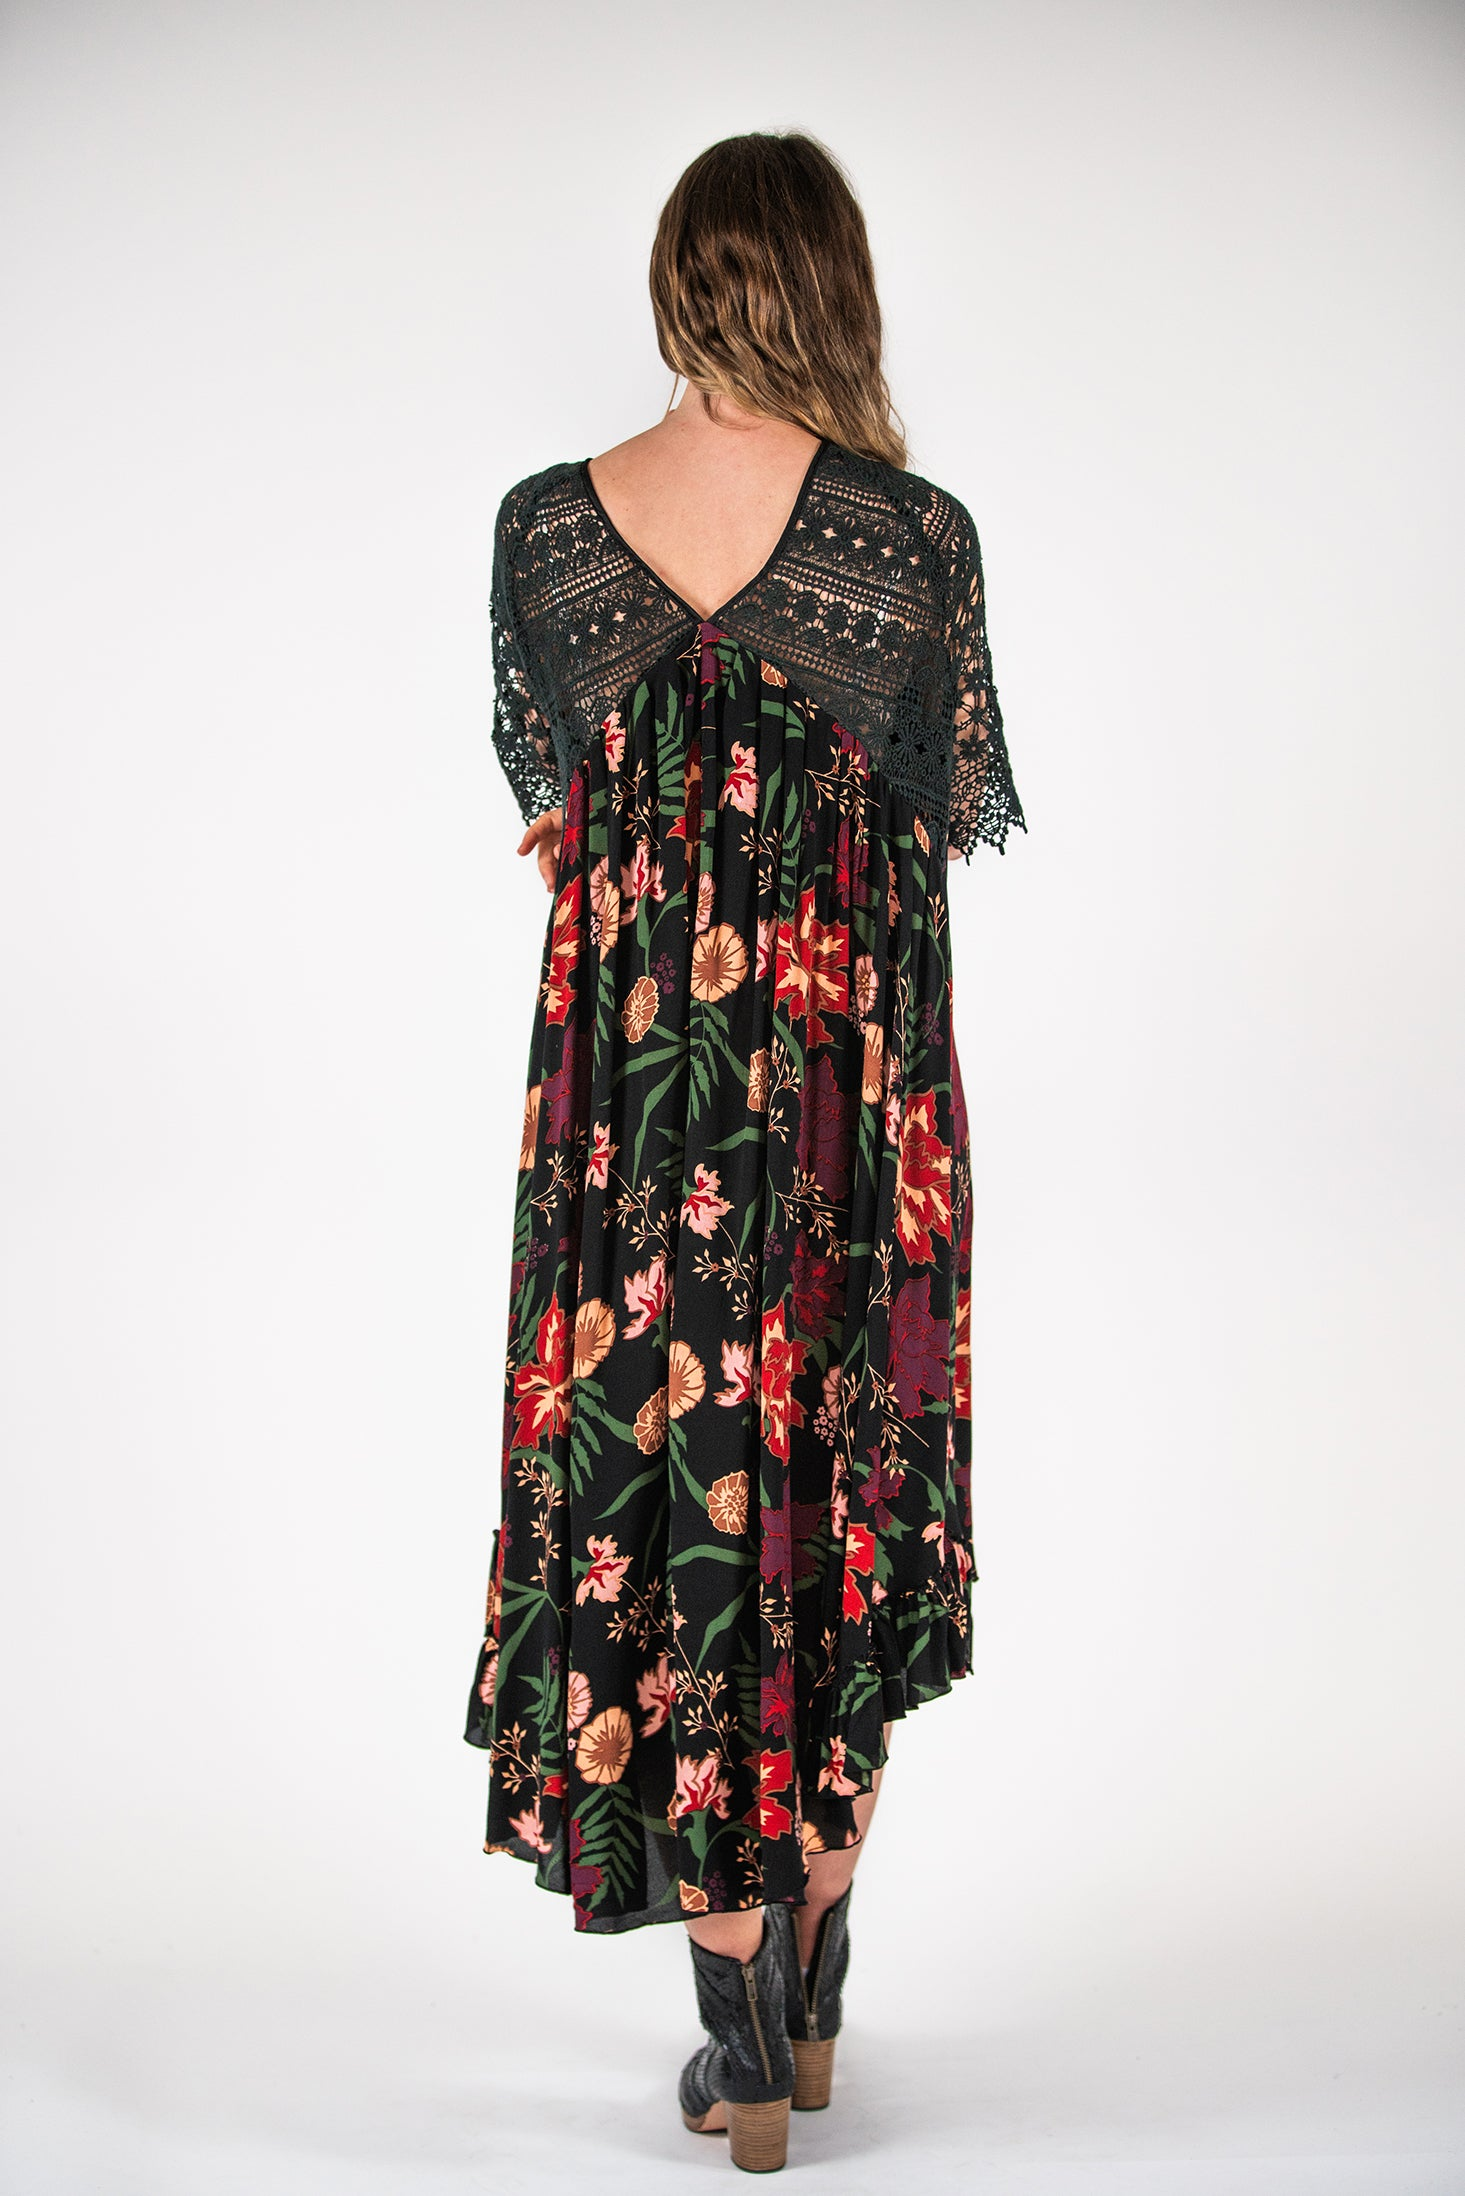 Lyndon Dress - Secret Garden Print